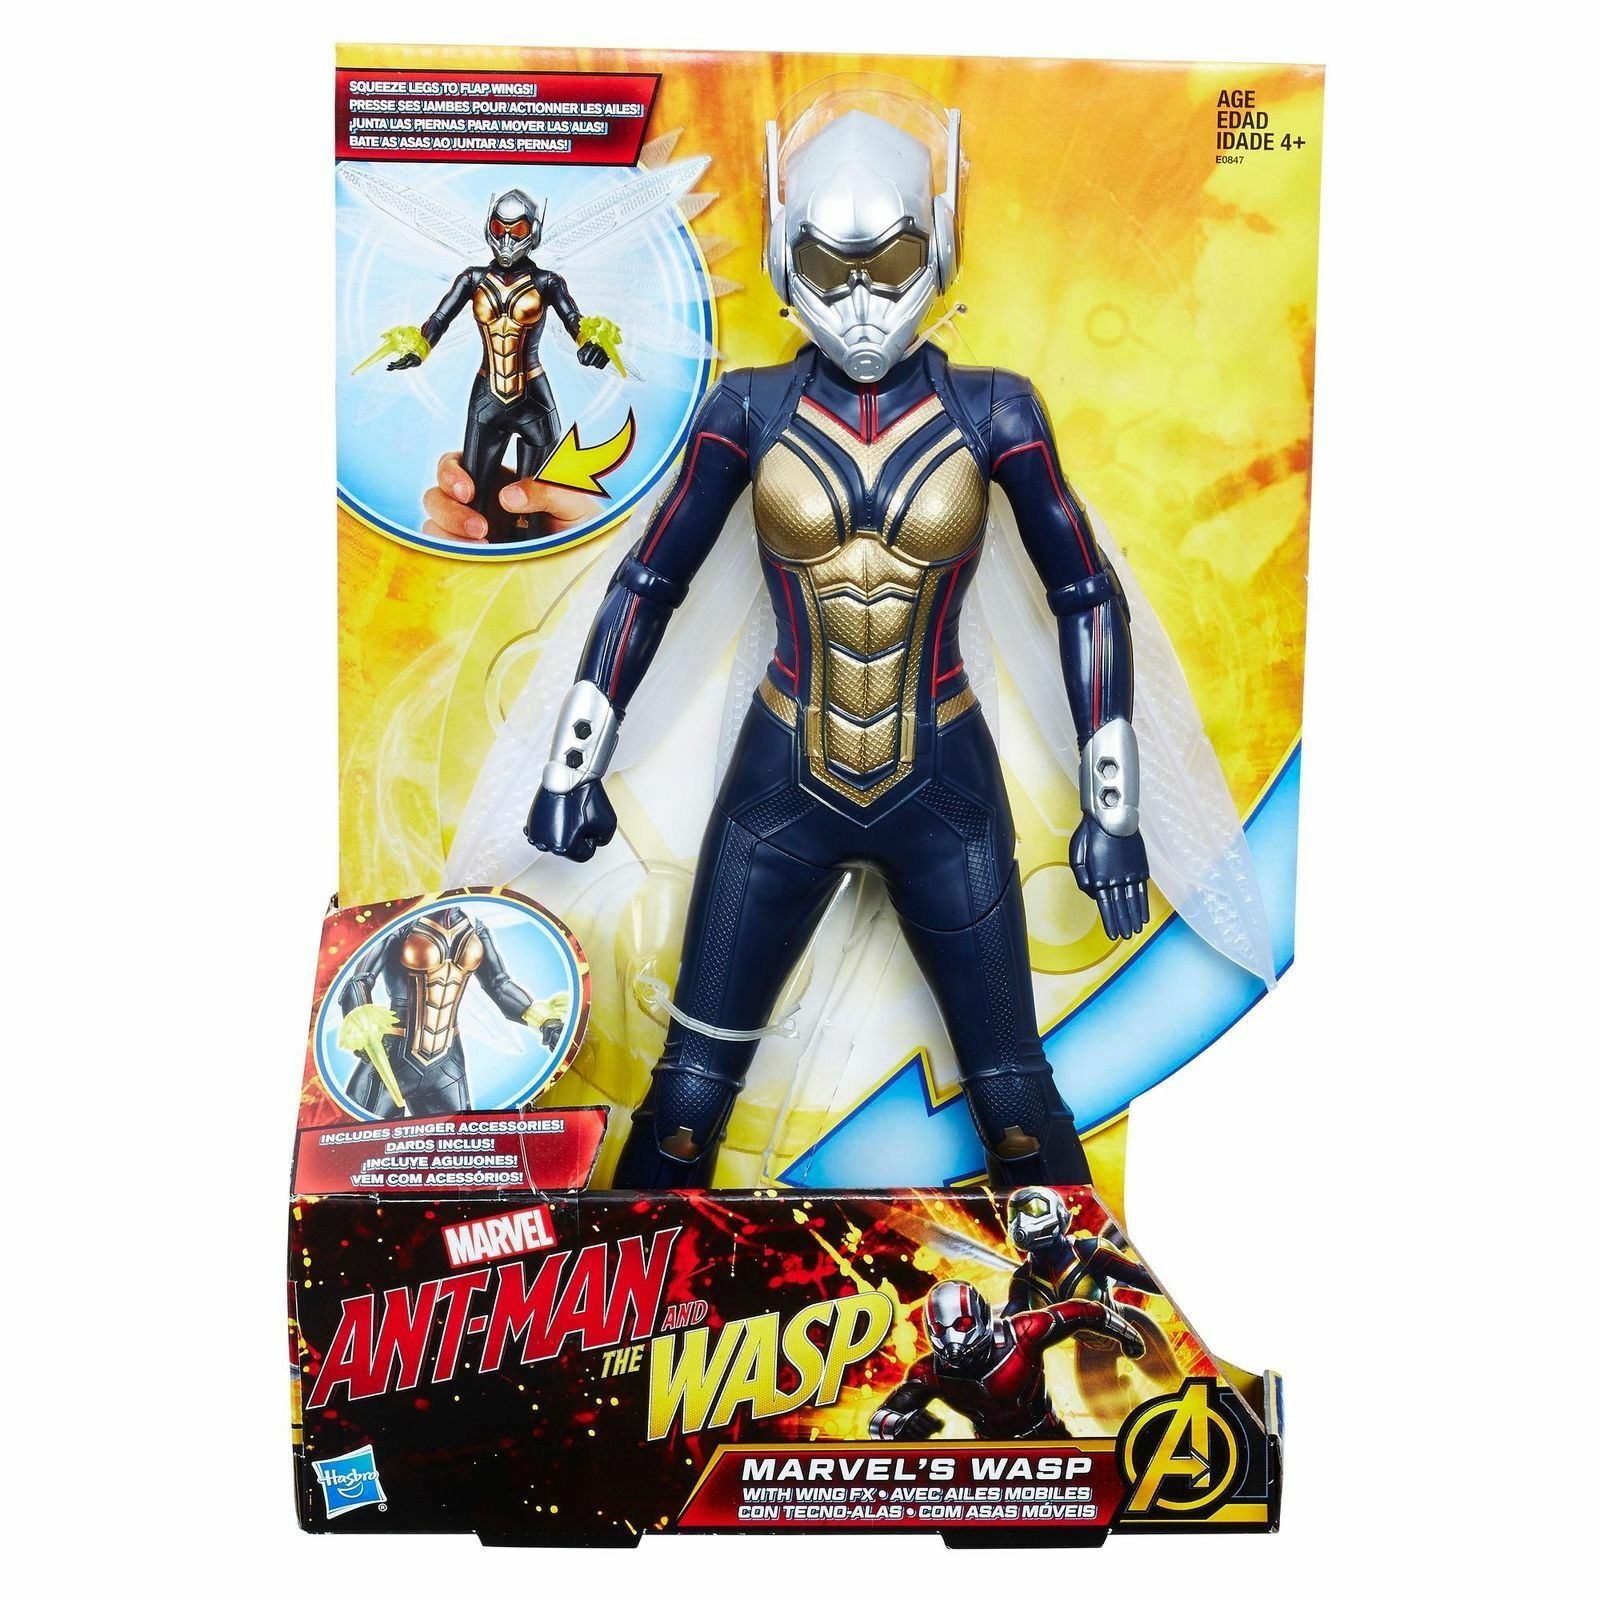 THE WASP ( 12  ) ANT-MAN & THE WASP MOVIE ( 2017 ) MARVEL AVENGERS ACTION FIGURE